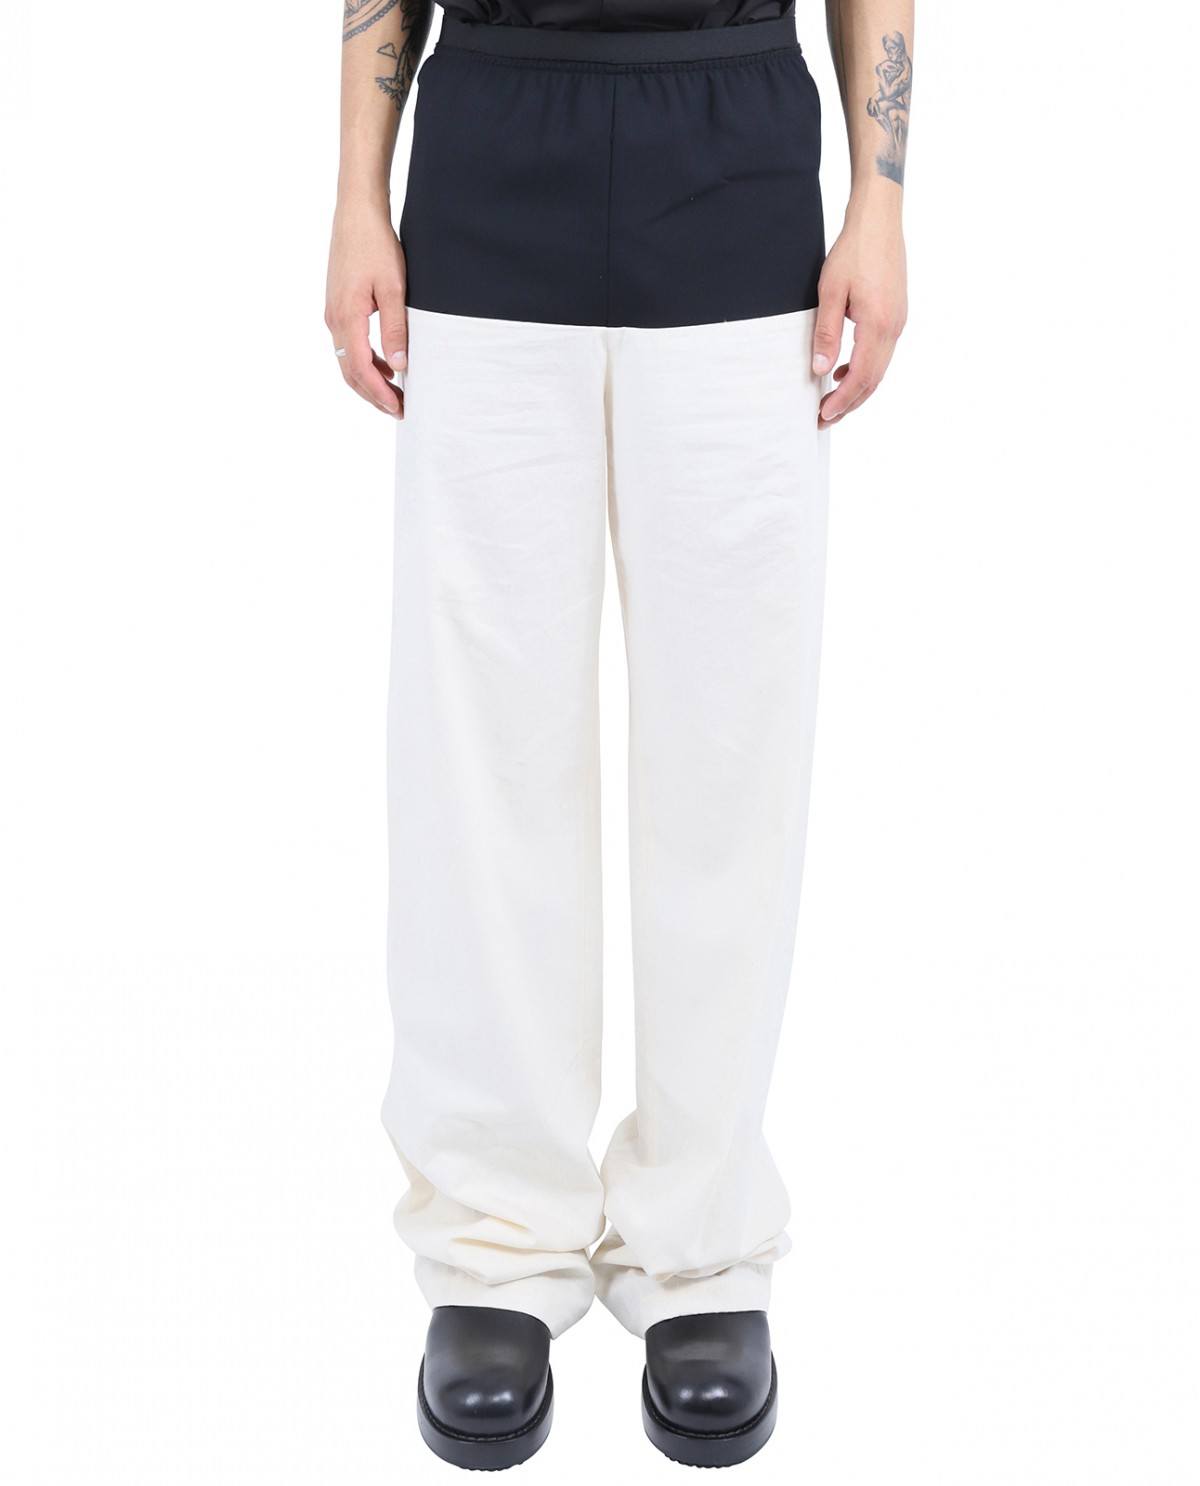 Raf Simons bi-coloured trousers